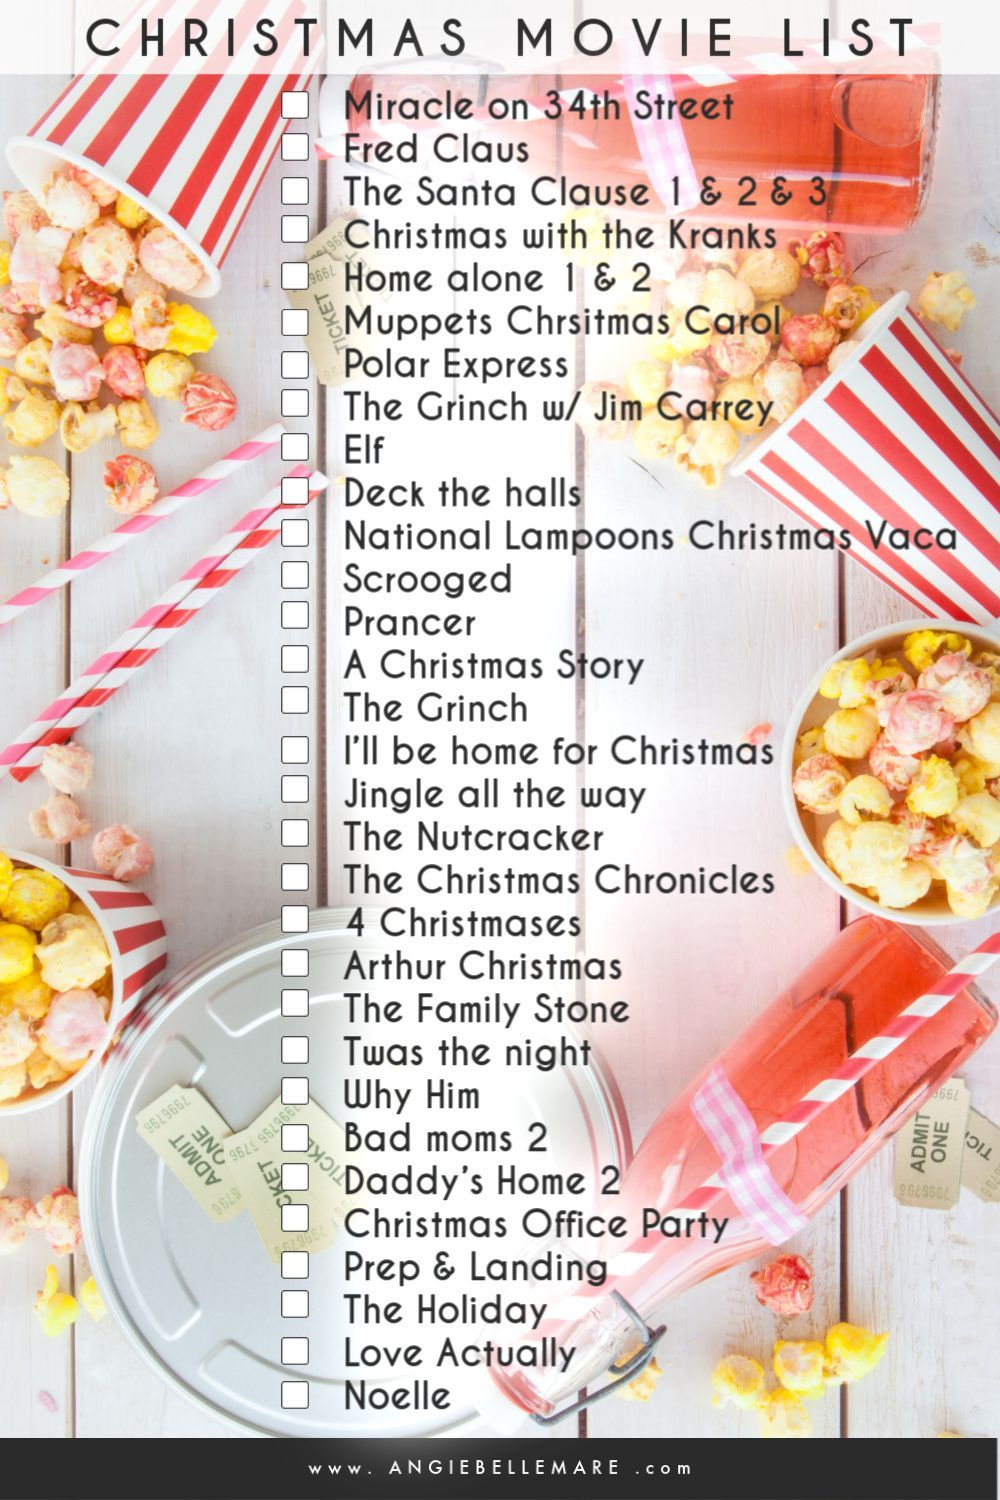 Must Watch Christmas Movie List Movie Christmas Movie In 2020 Christmas Movies Christmas Movies List Christmas Jingles